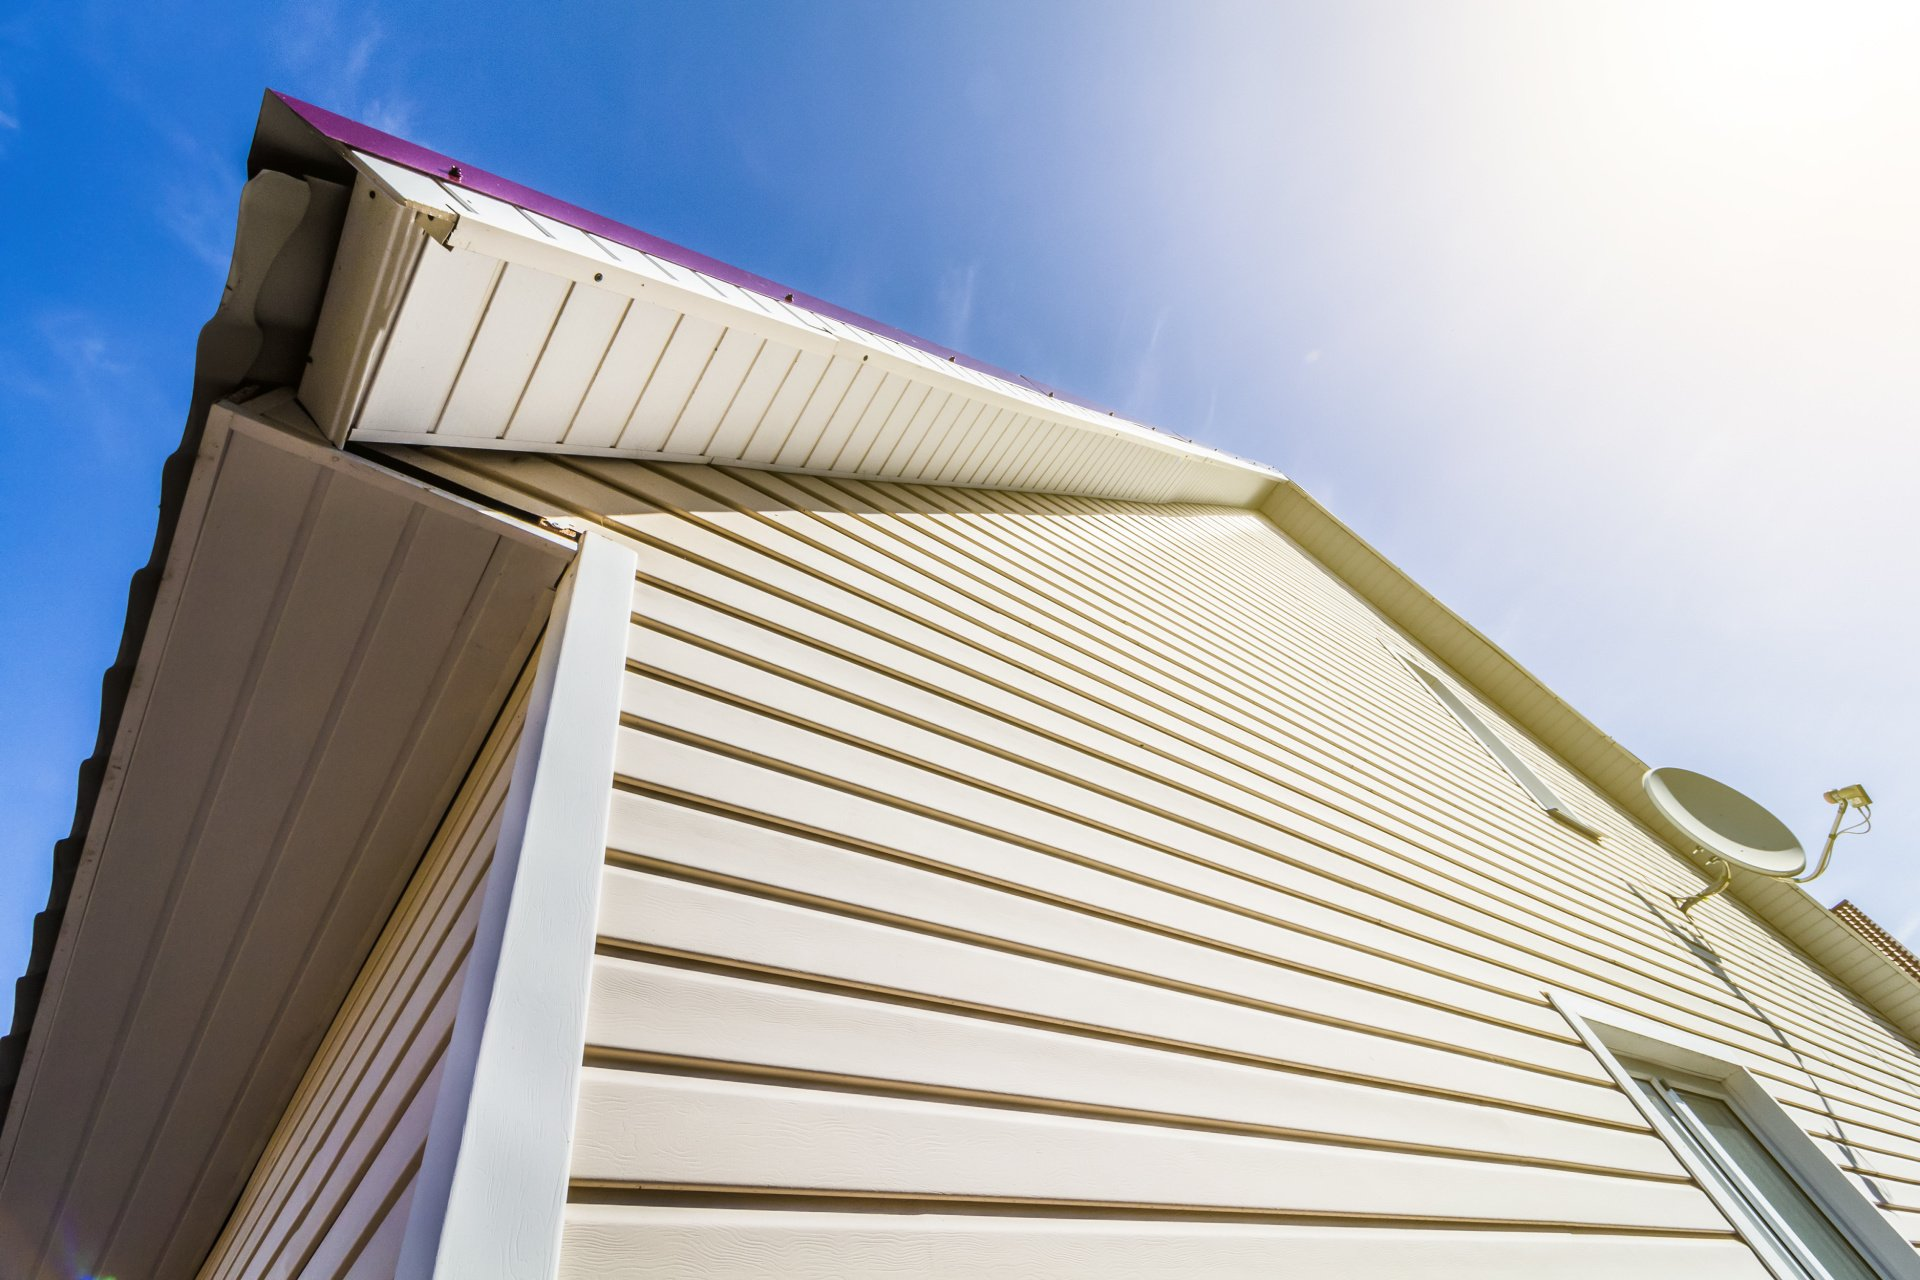 Can I Paint My Vinyl Siding Or Should I Replace It